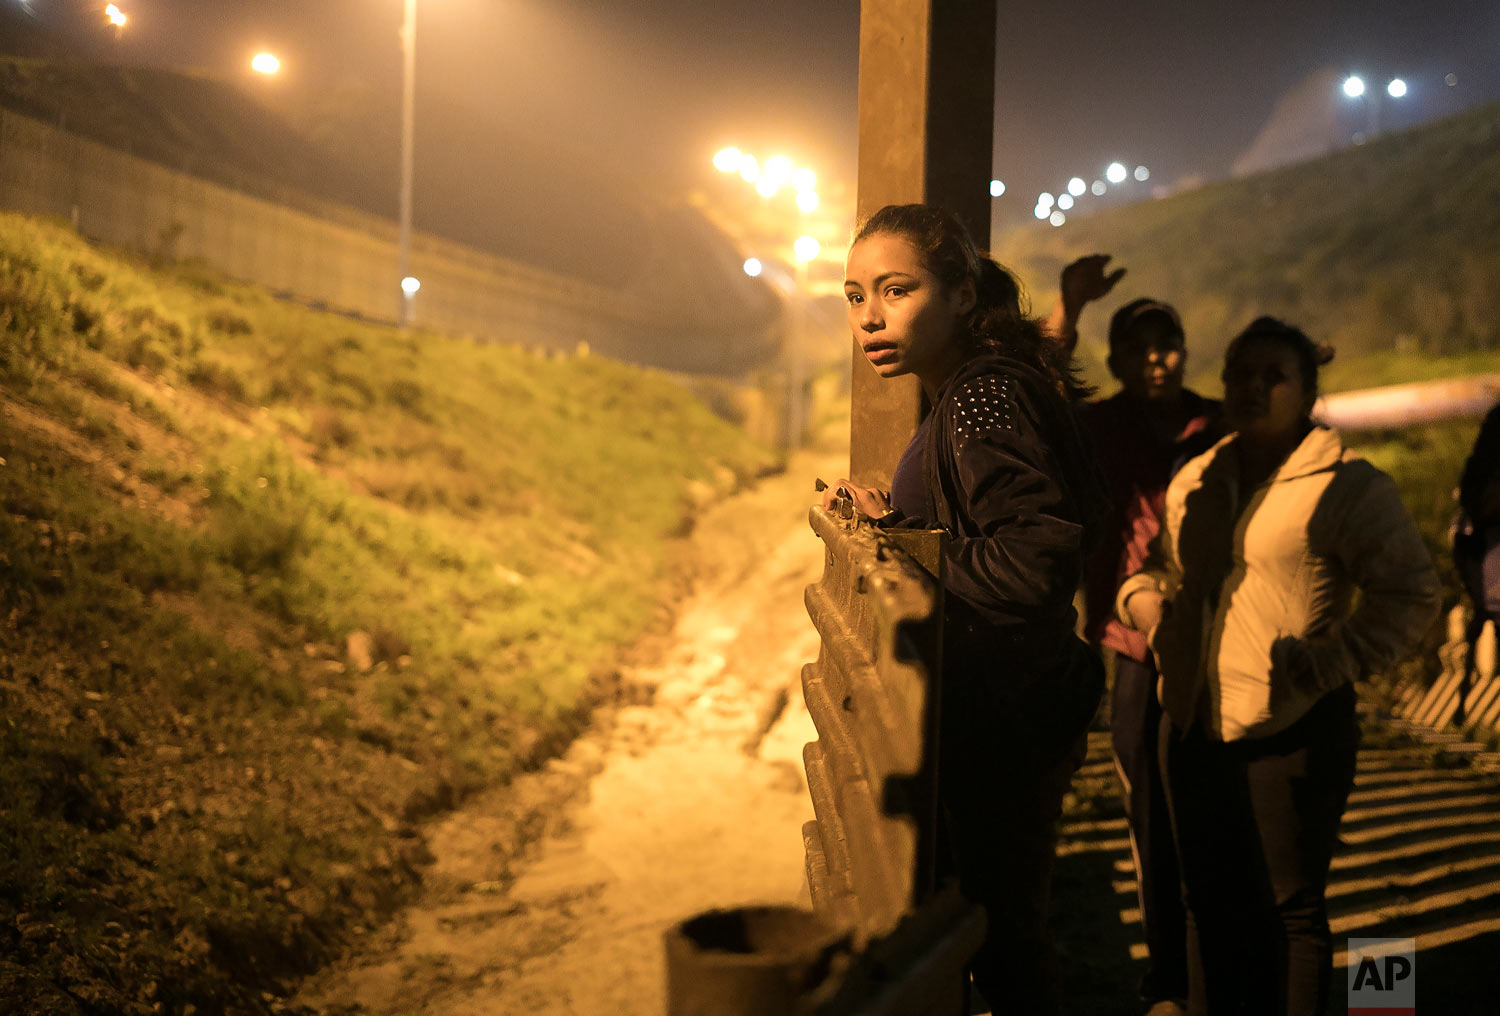 Migrant Xiomara Henriquez Ayala, 13, from El Salvador, peers over the U.S. border fence from Tijuana, Mexico, Feb. 8, 2019, next to Josue Mejia Lucero, 17, and his sister Lucero, 25, both of Honduras, as they look for a way to help Lucero and her son cross in the U.S. undetected. (AP Photo/Emilio Espejel)